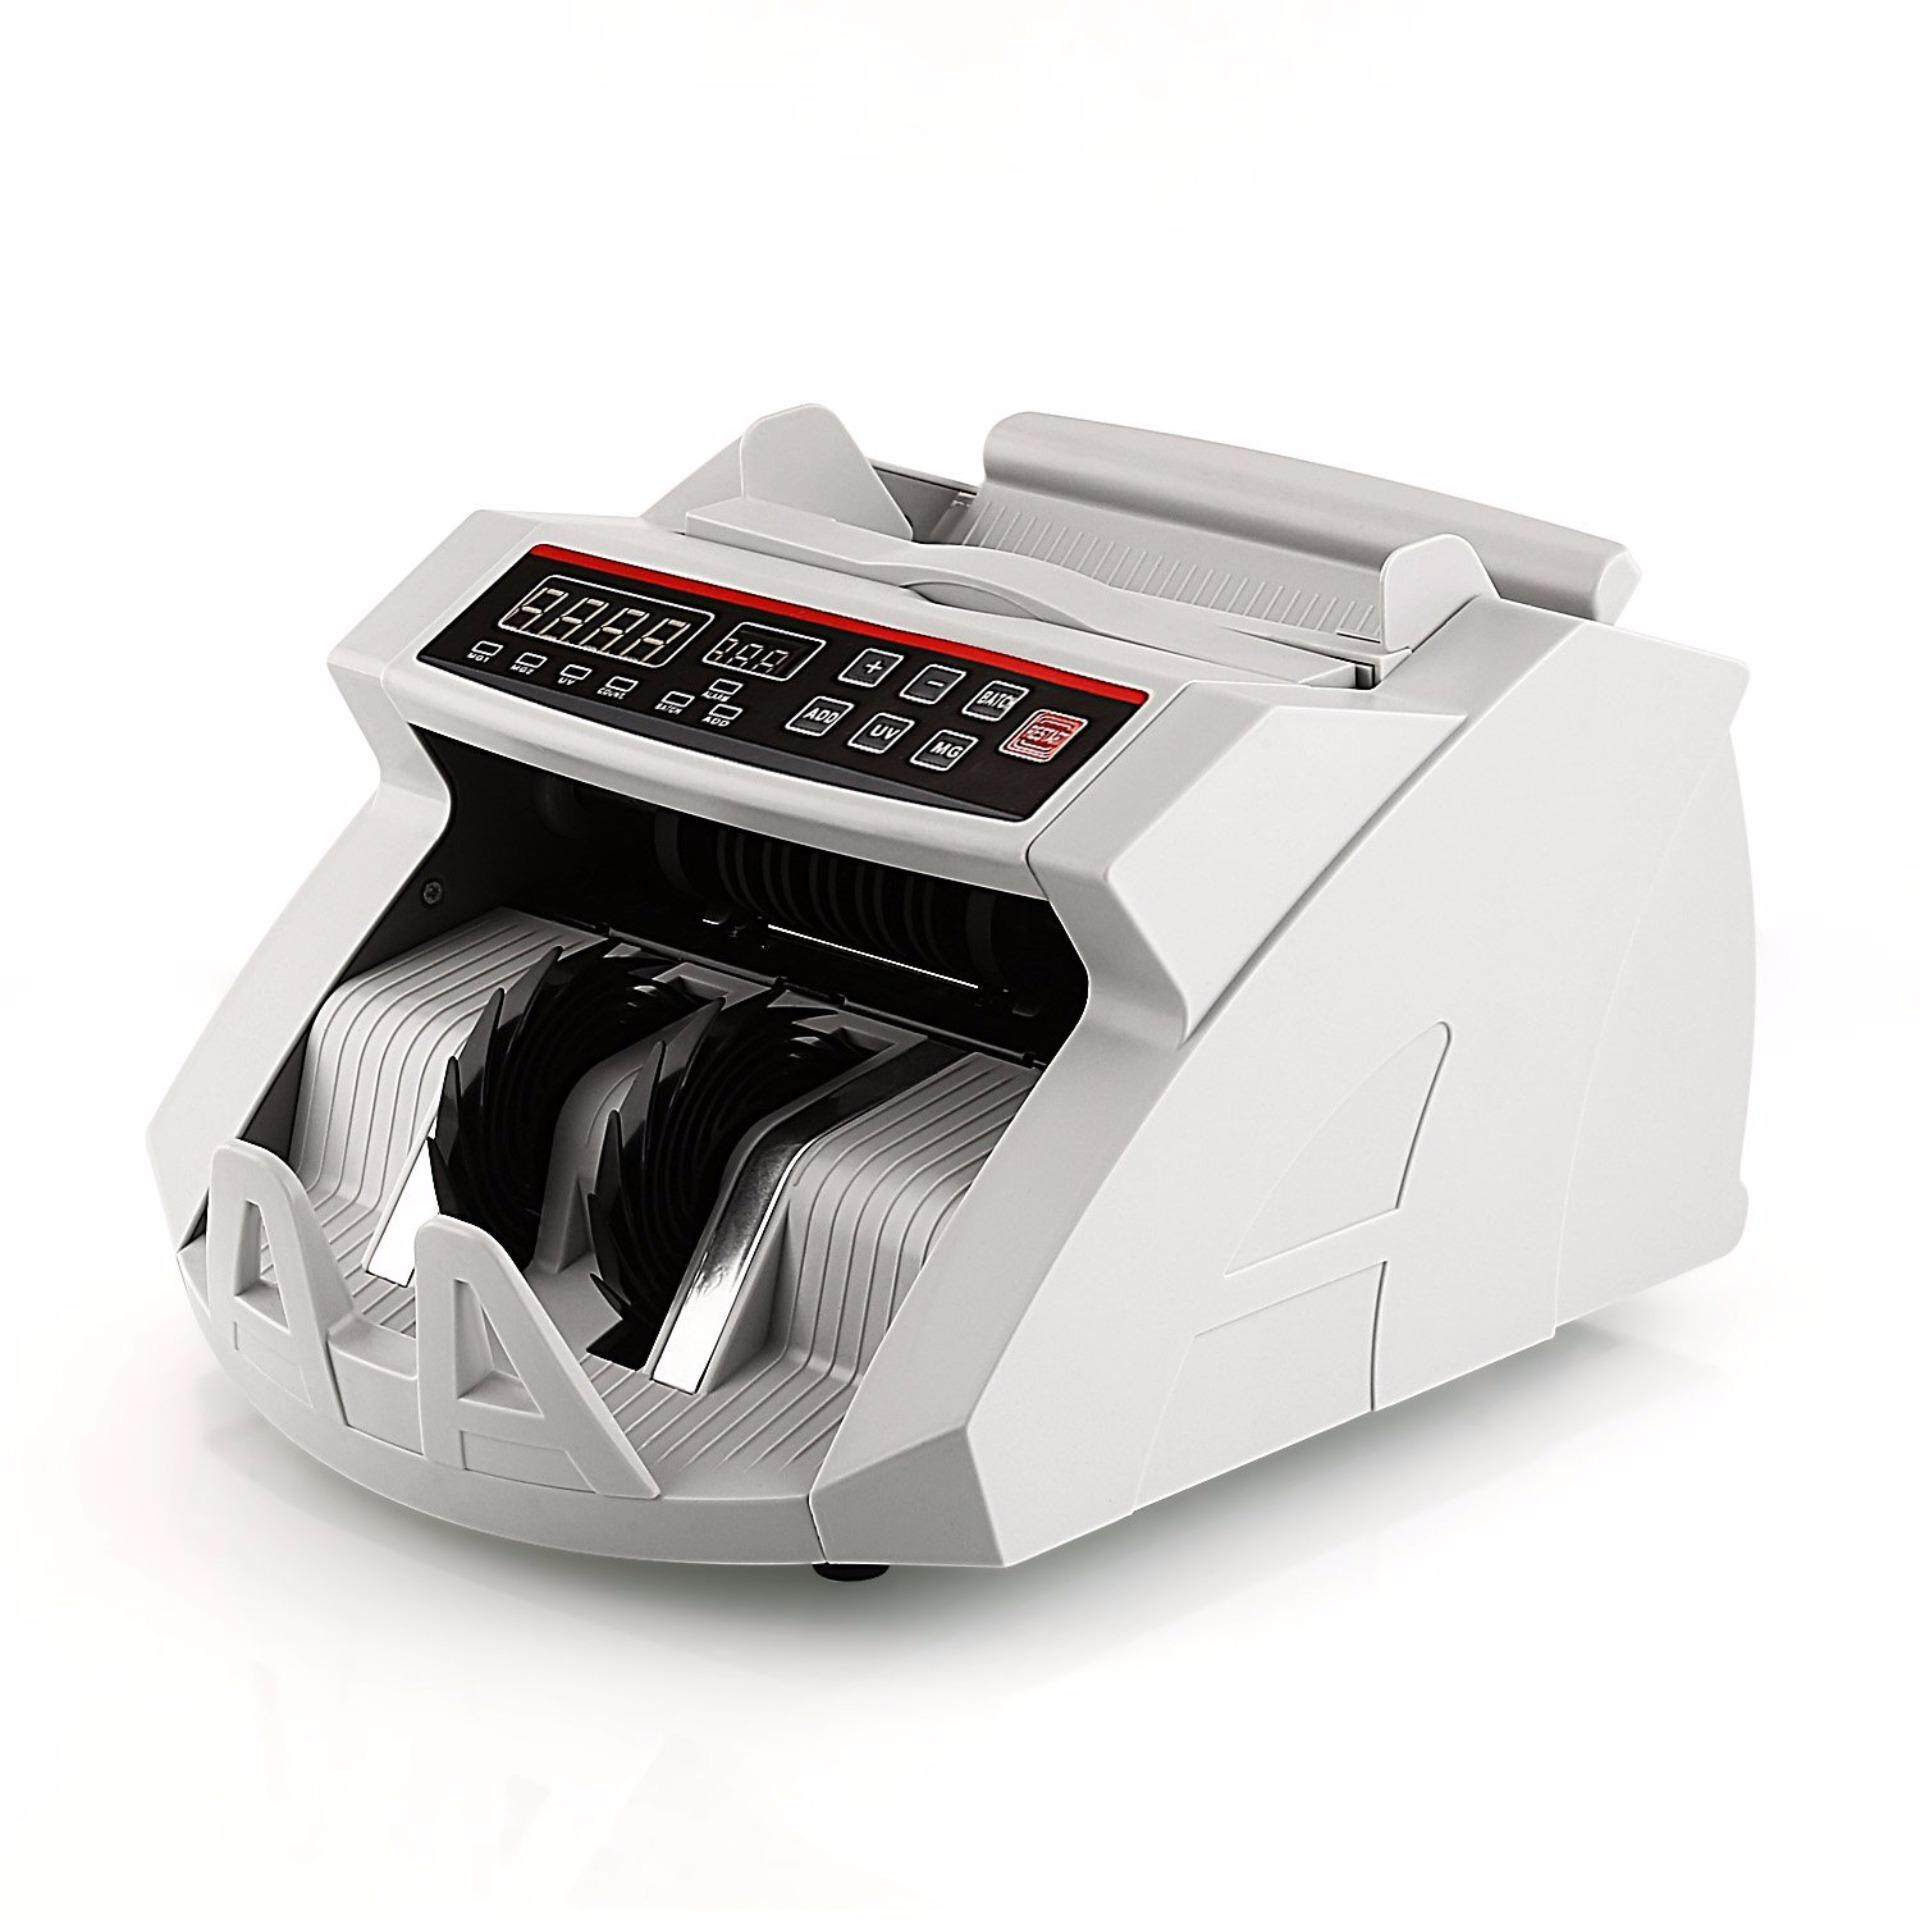 BILL MONEY NOTE COUNTER MACHINE + EXTRA DISPLAY ( 6 YEARS WARRANTY )